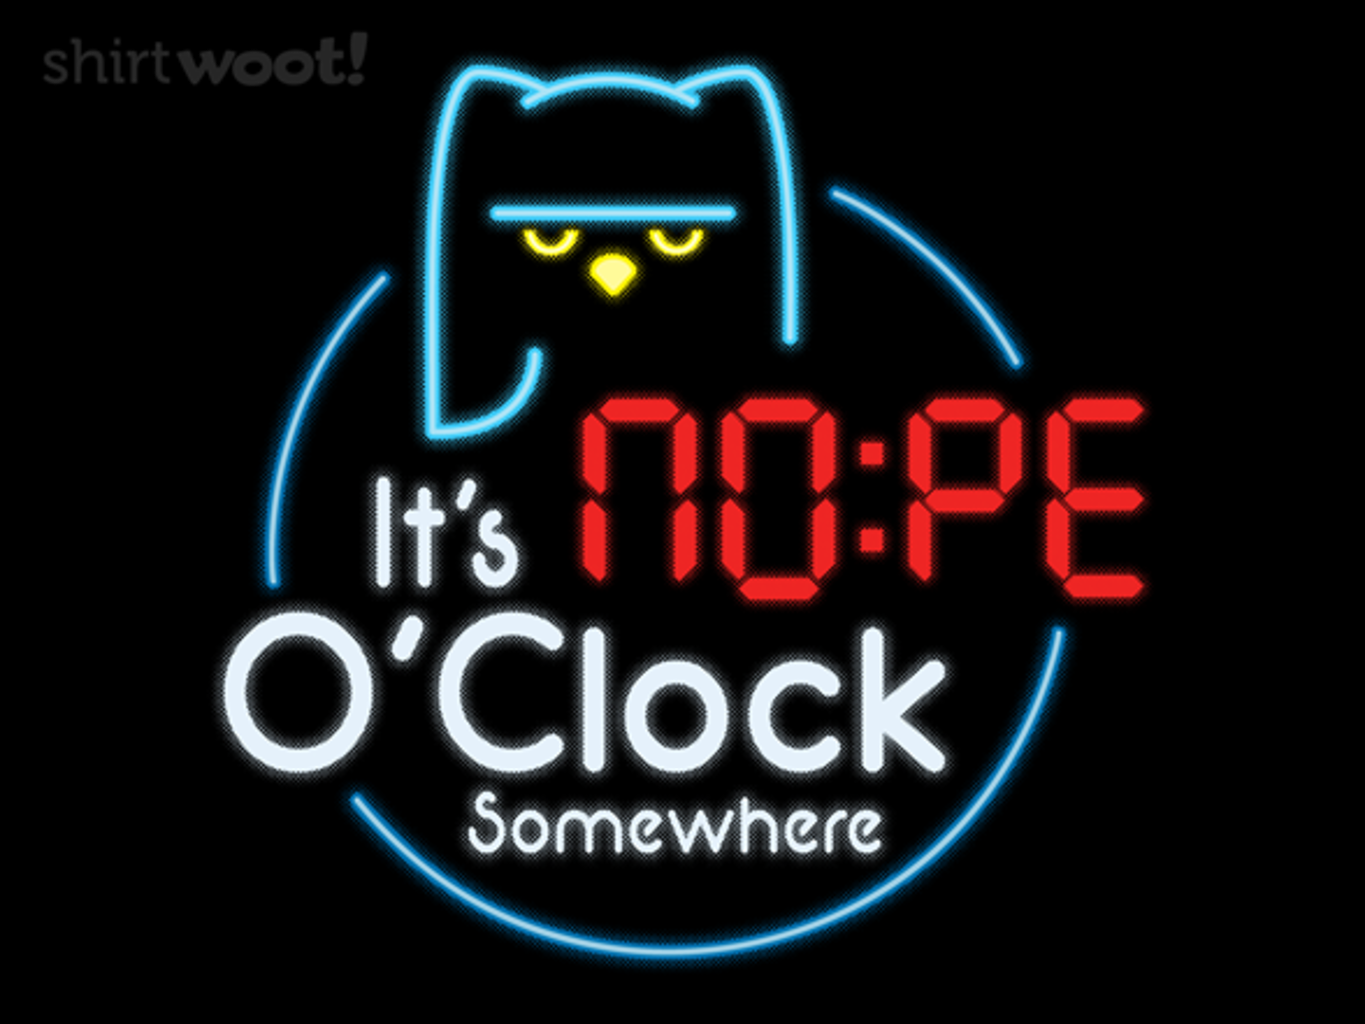 Woot!: It's Nope o'clock - $15.00 + Free shipping